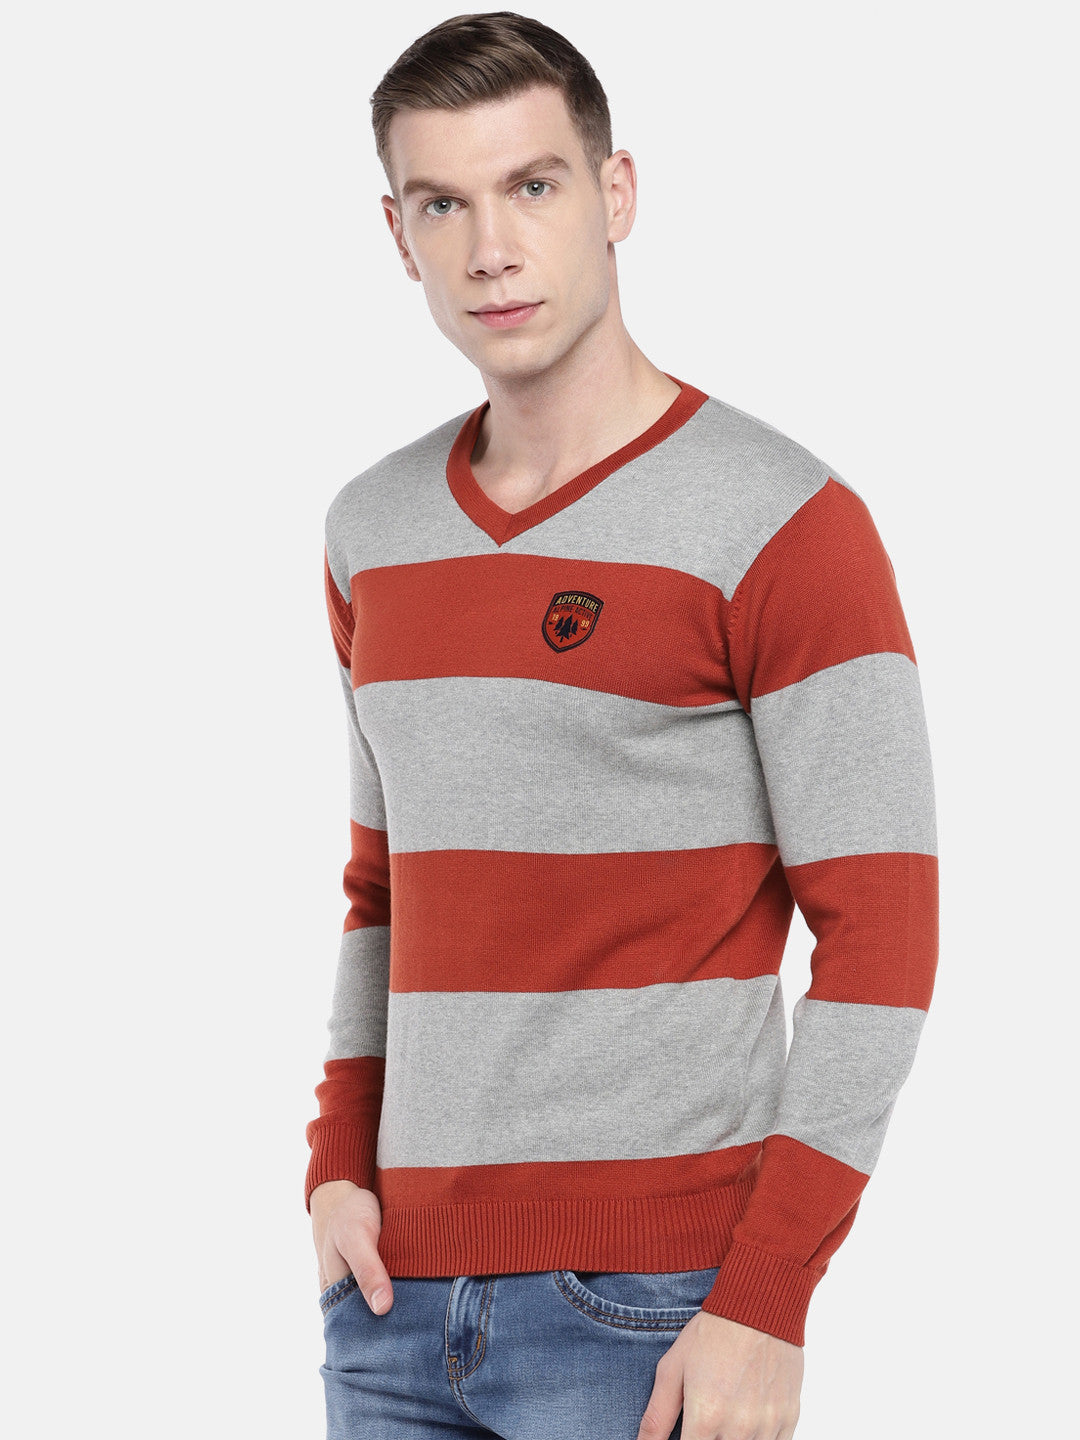 Rust Orange & Grey Striped Sweater-2